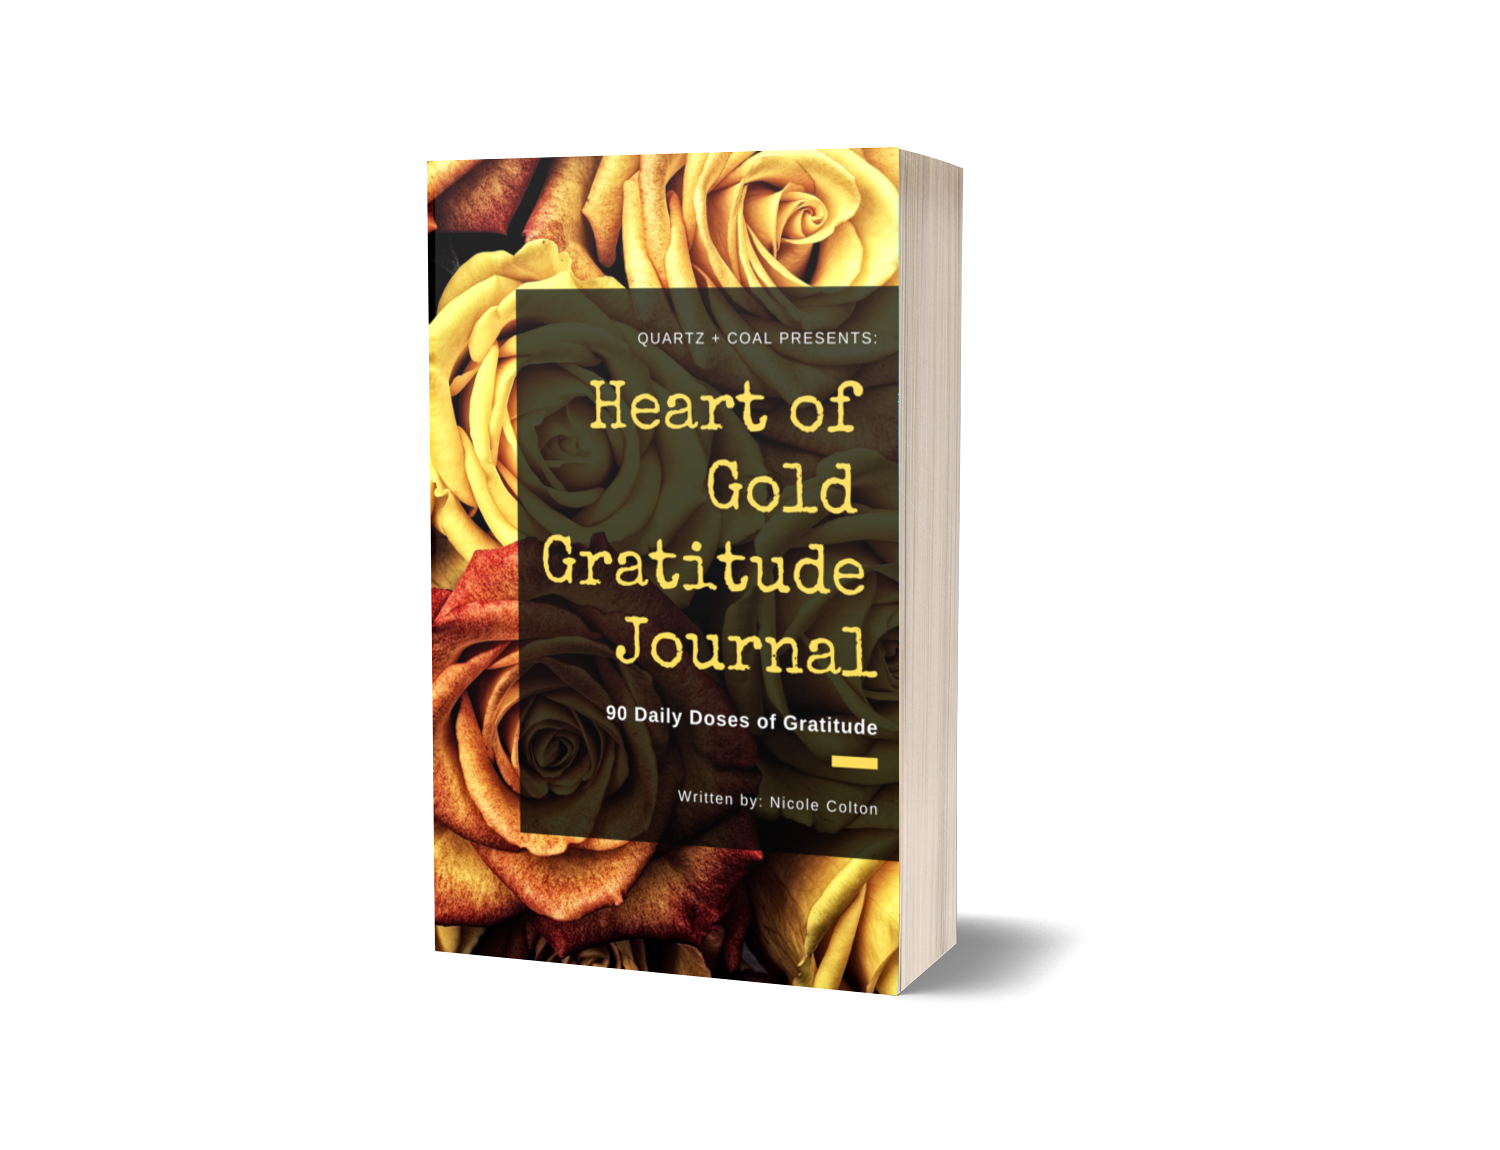 Heart of Gold Gratitude Journal  [PRE-ORDER - Available June 15]